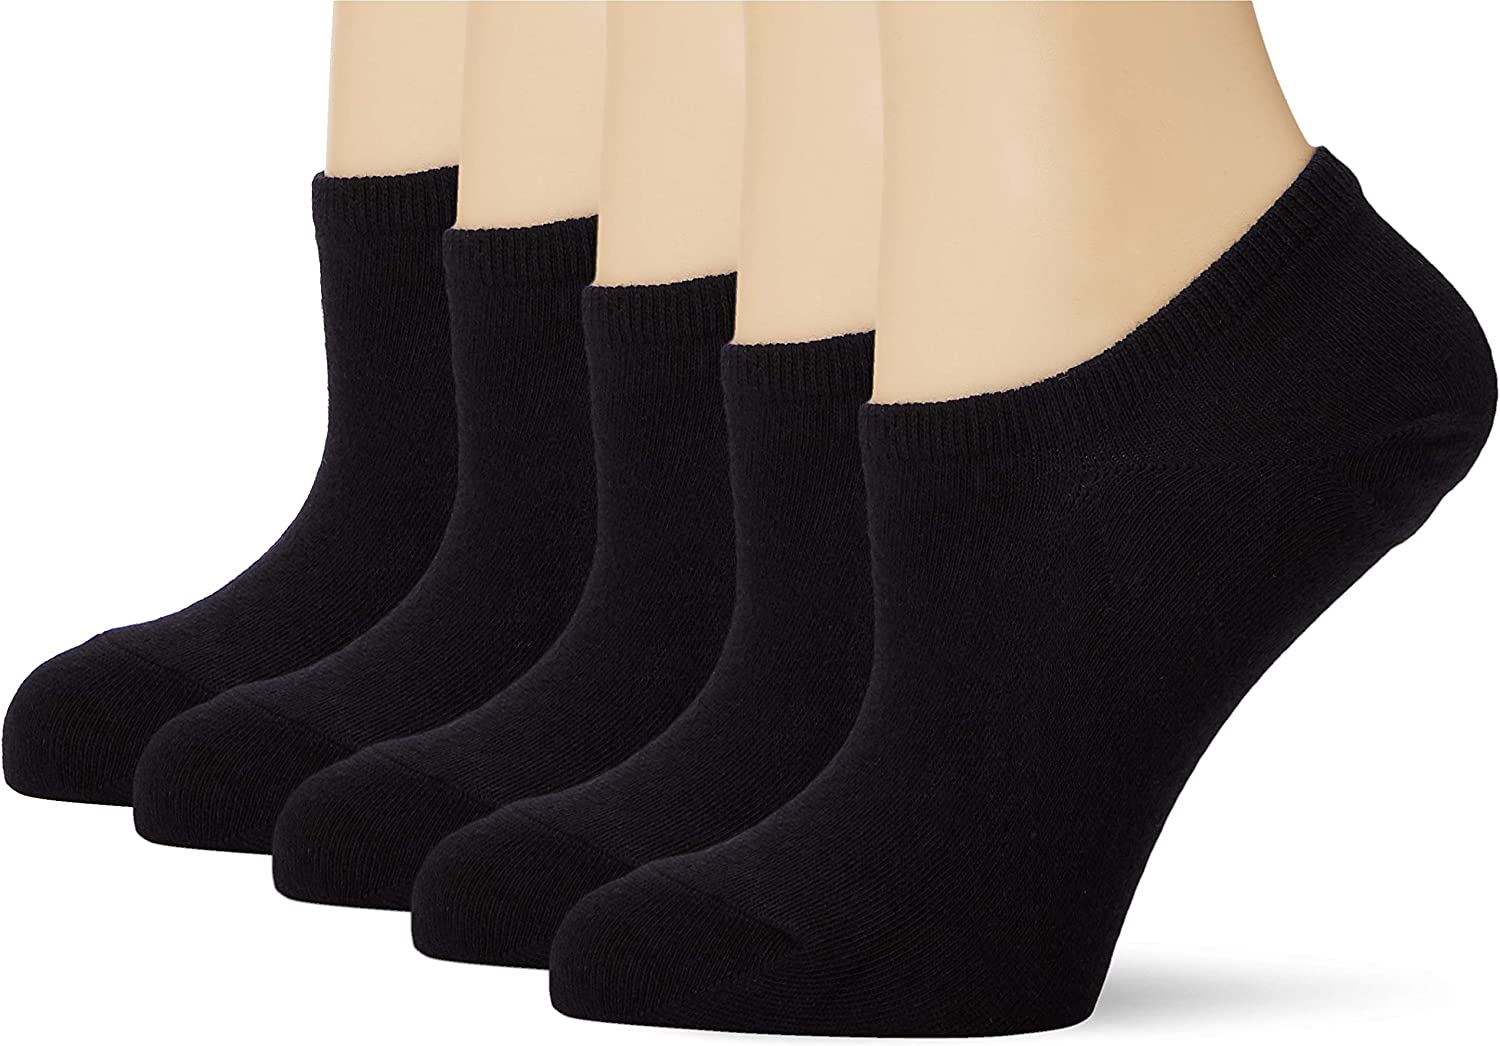 MERAKI Womens Cotton Invisible Socks Pack of 5 Brand